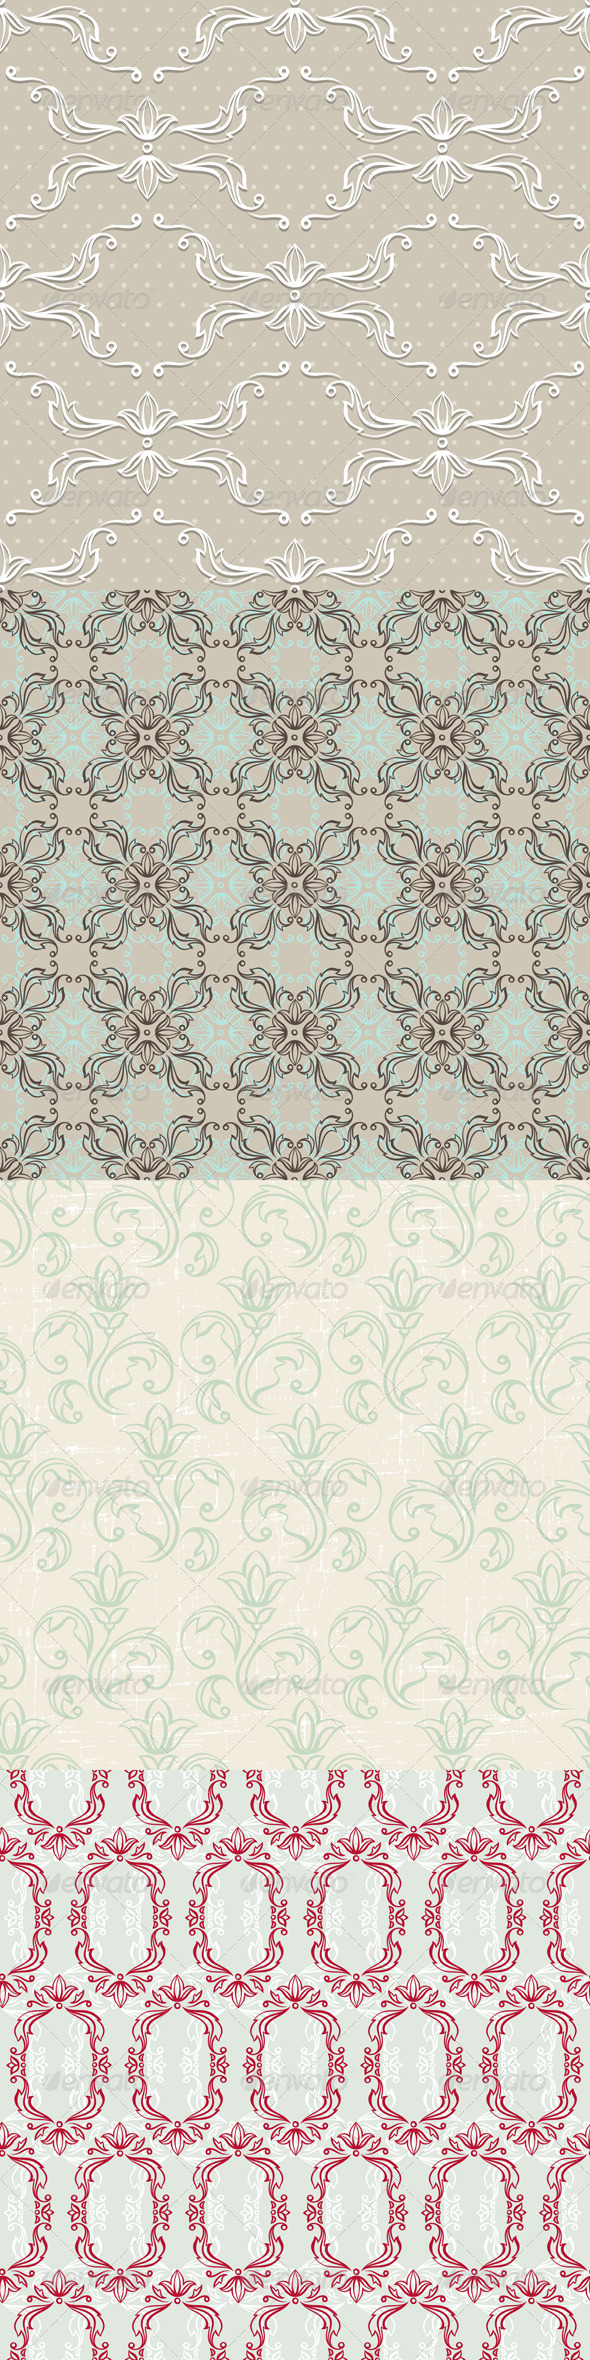 Seamless Vintage Wallpapers, Floral Patterns. - Patterns Decorative